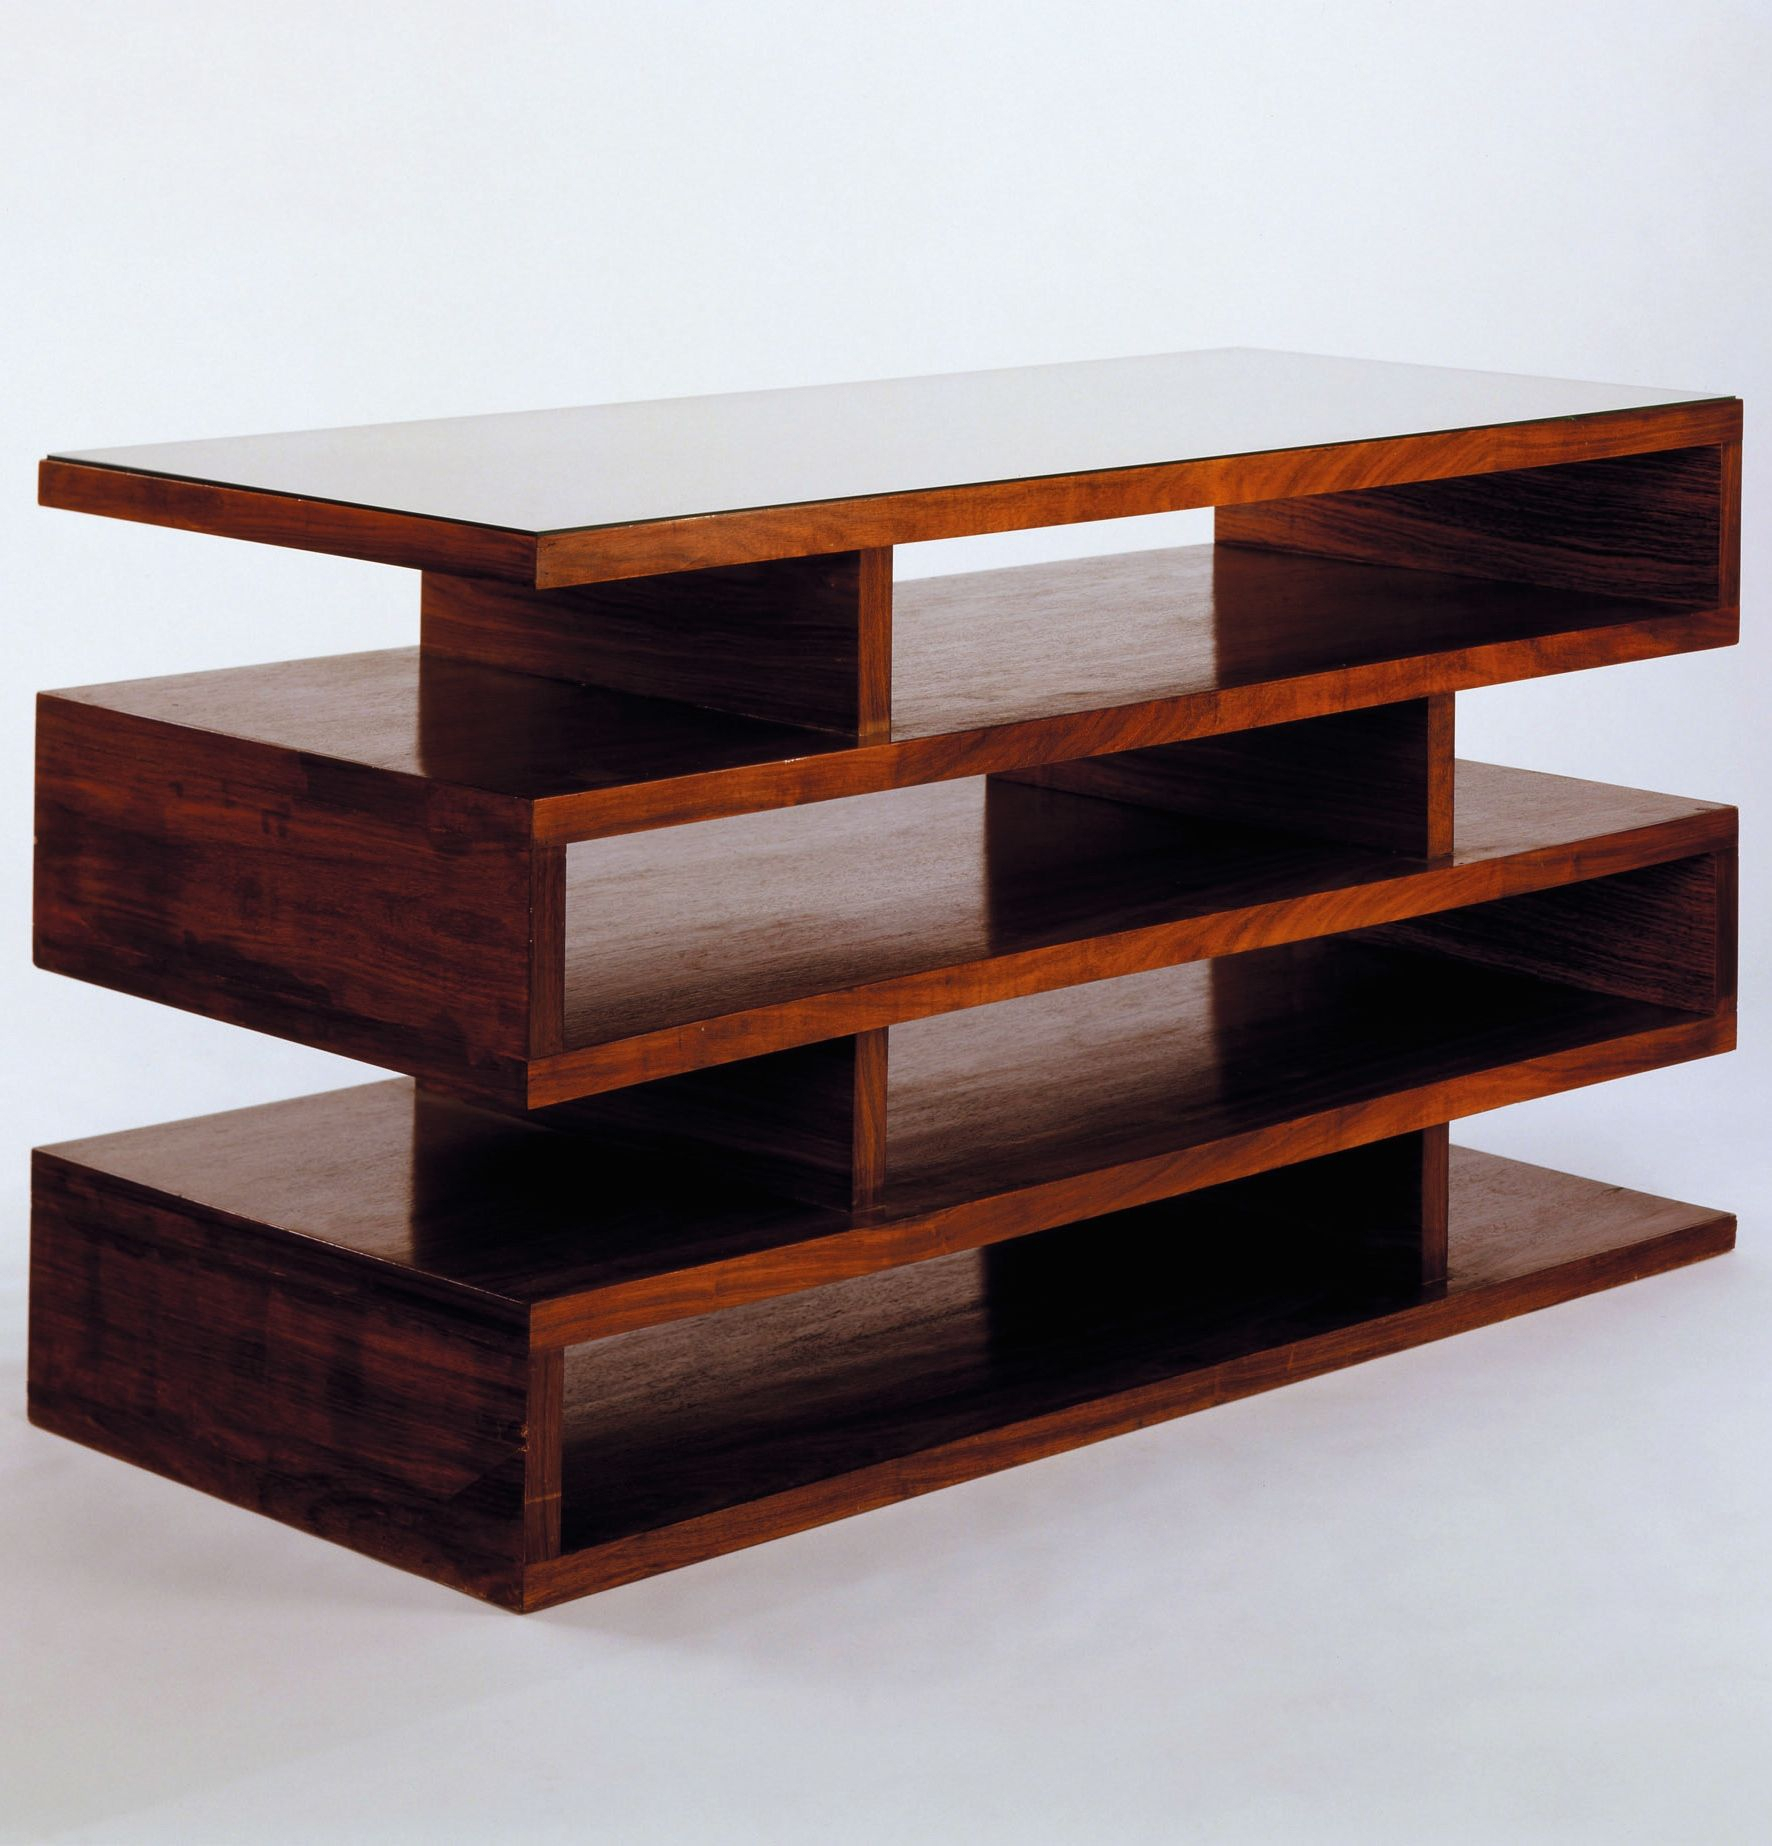 Walter Gropius; Newspaper Shelves, 1923. | Shelved | Bauhaus Pertaining To Walters Media Console Tables (Photo 6 of 30)